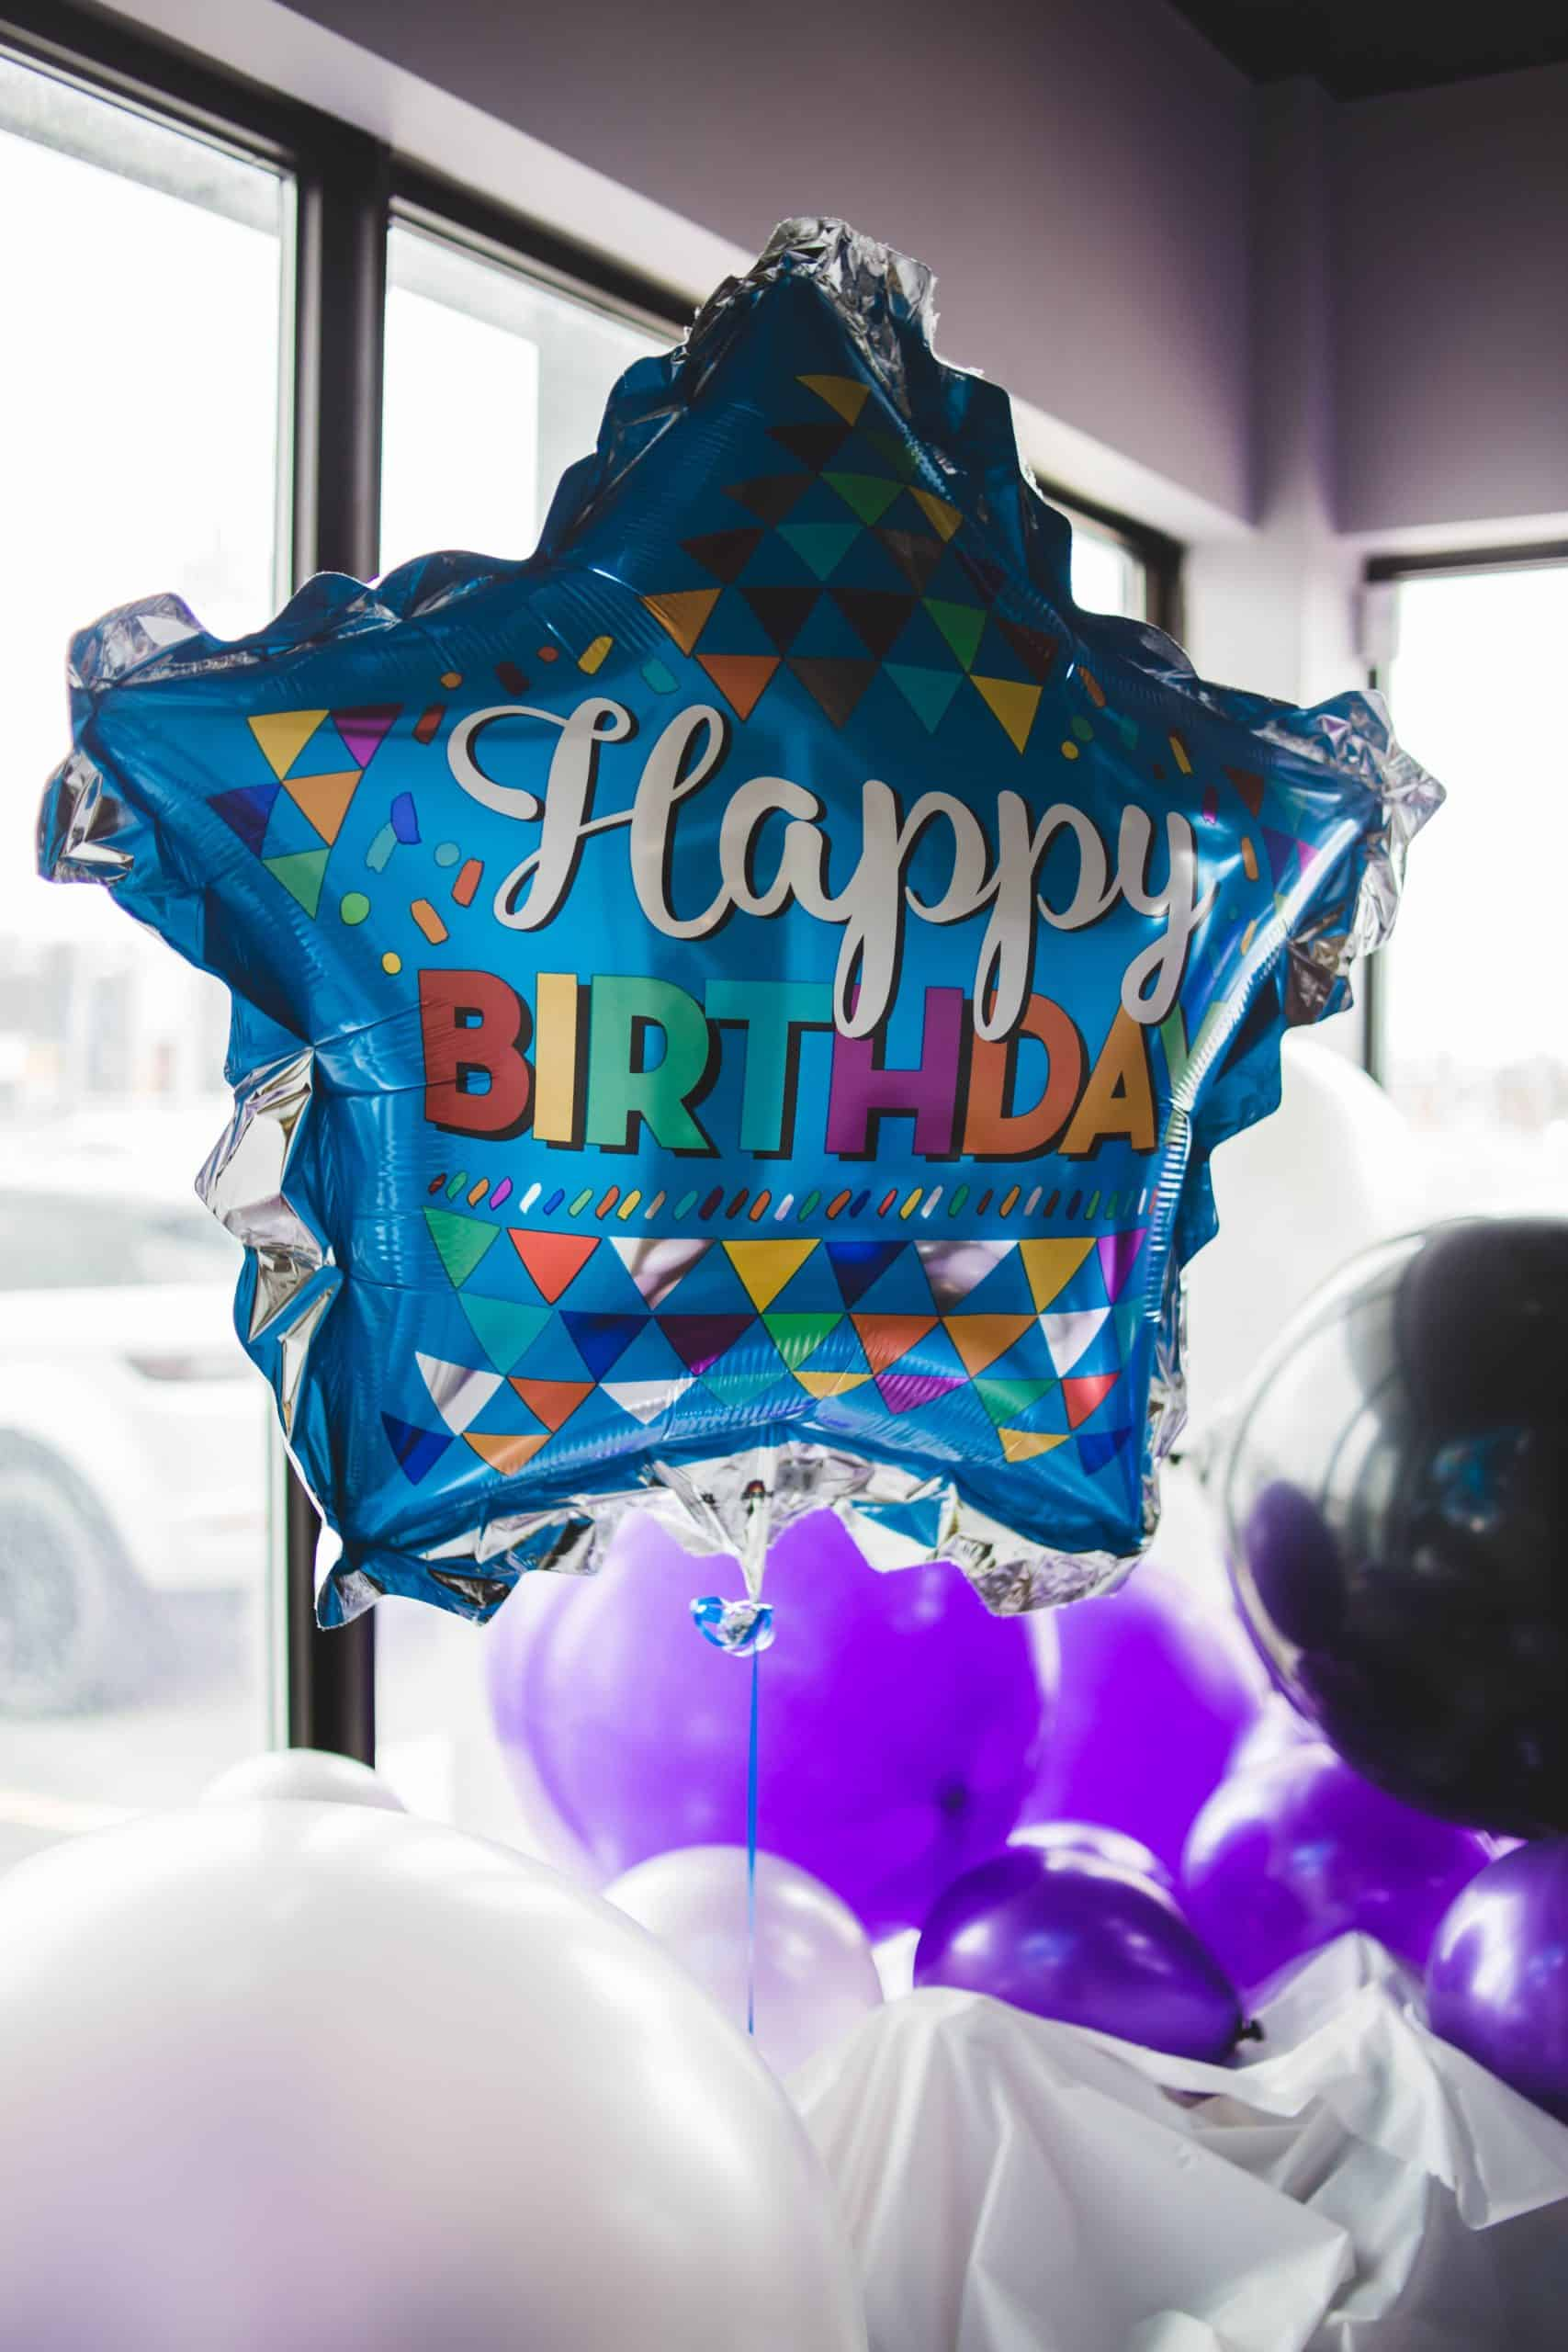 Some Fun Ideas For a Birthday Party